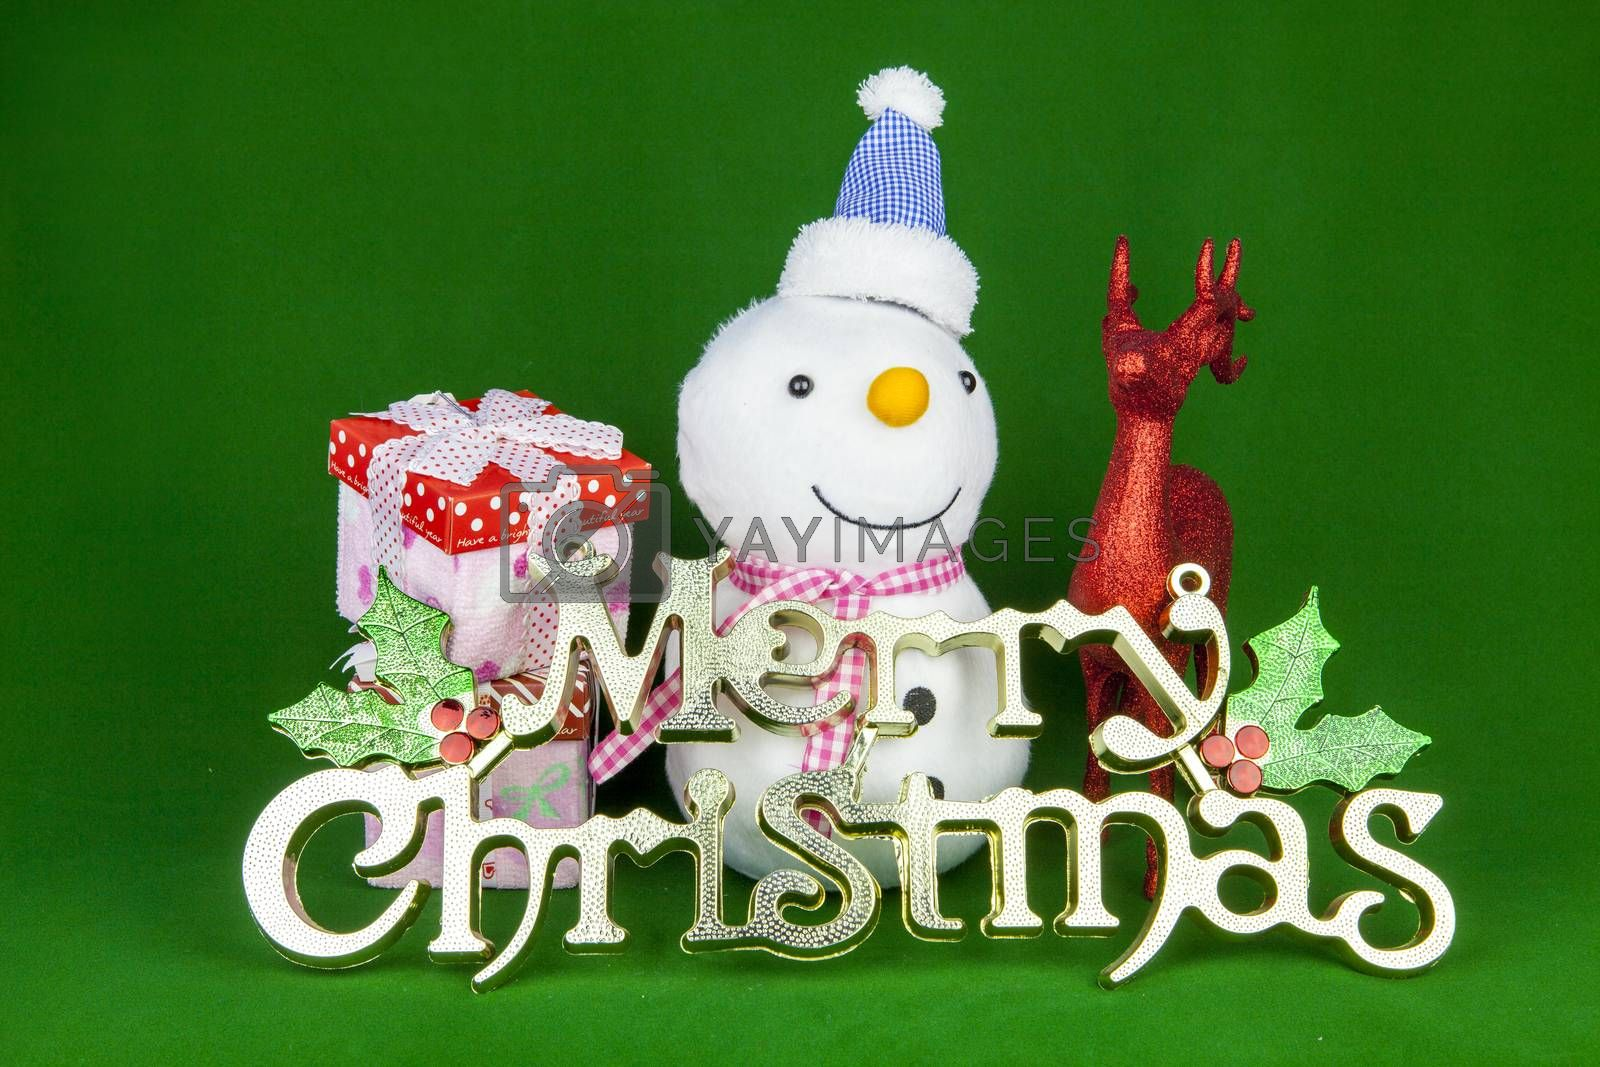 Royalty free image of Christmas snowman by Chattranusorn09